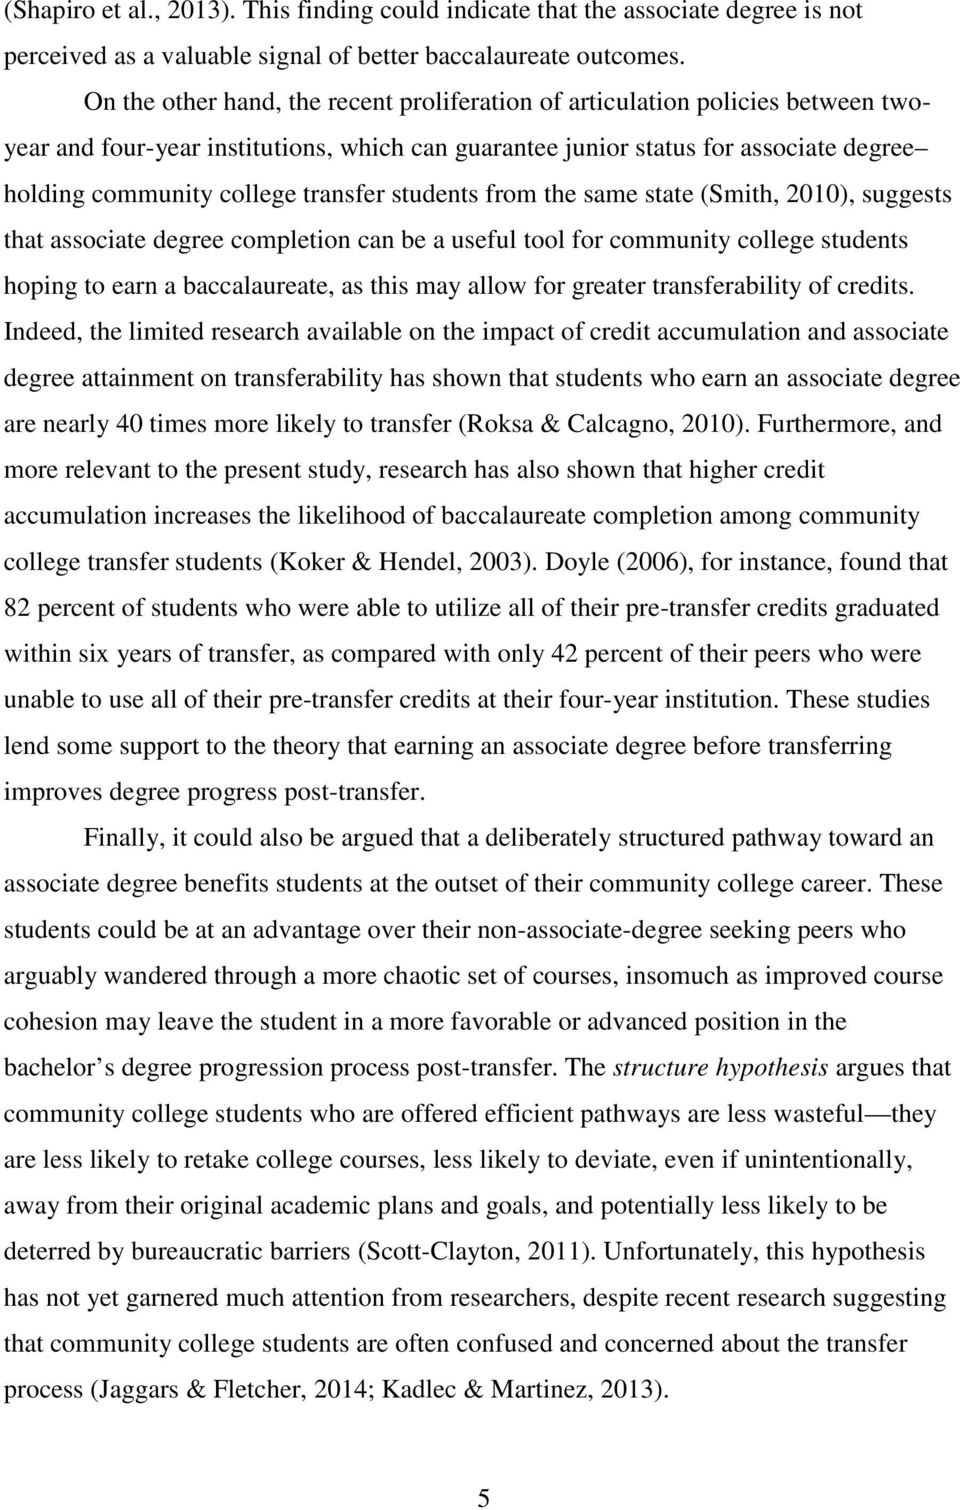 transfer students from the same state (Smith, 2010), suggests that associate degree completion can be a useful tool for community college students hoping to earn a baccalaureate, as this may allow